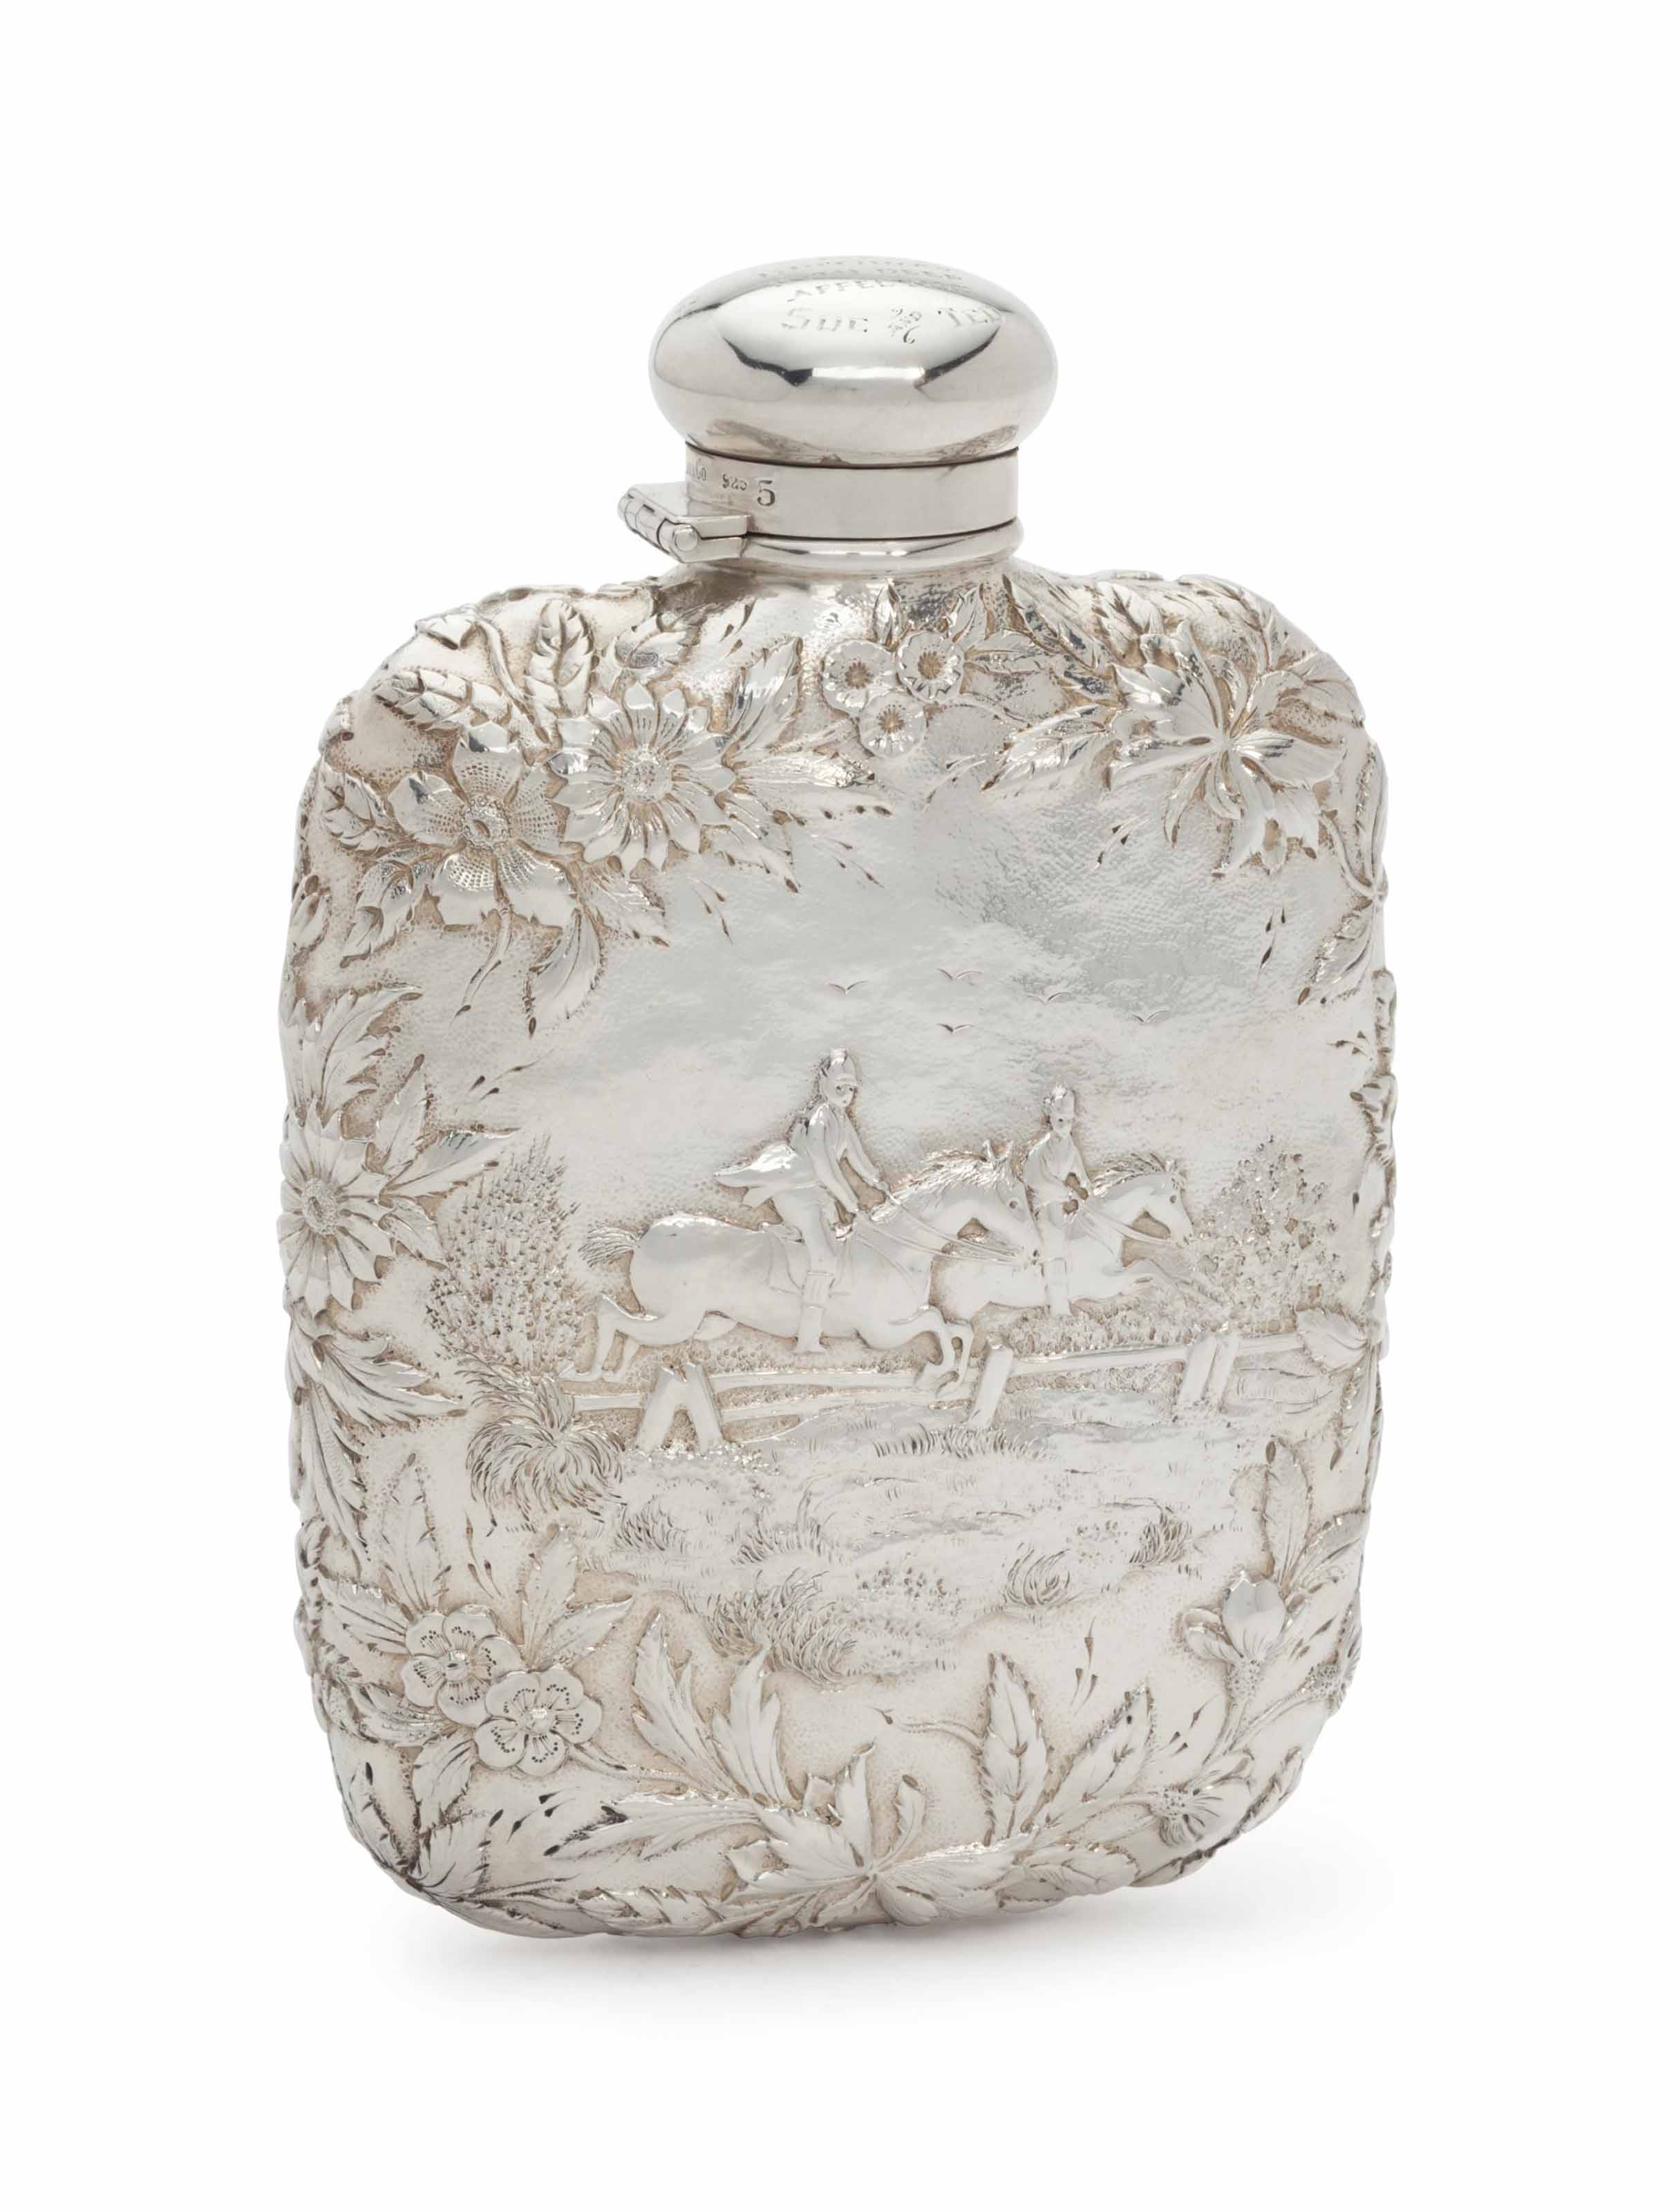 PRESIDENT RONALD REAGAN A 70TH BIRTHDAY GIFT, FEBRUARY 6, 1981  AN AMERICAN SILVER REPOUSSE FLASK